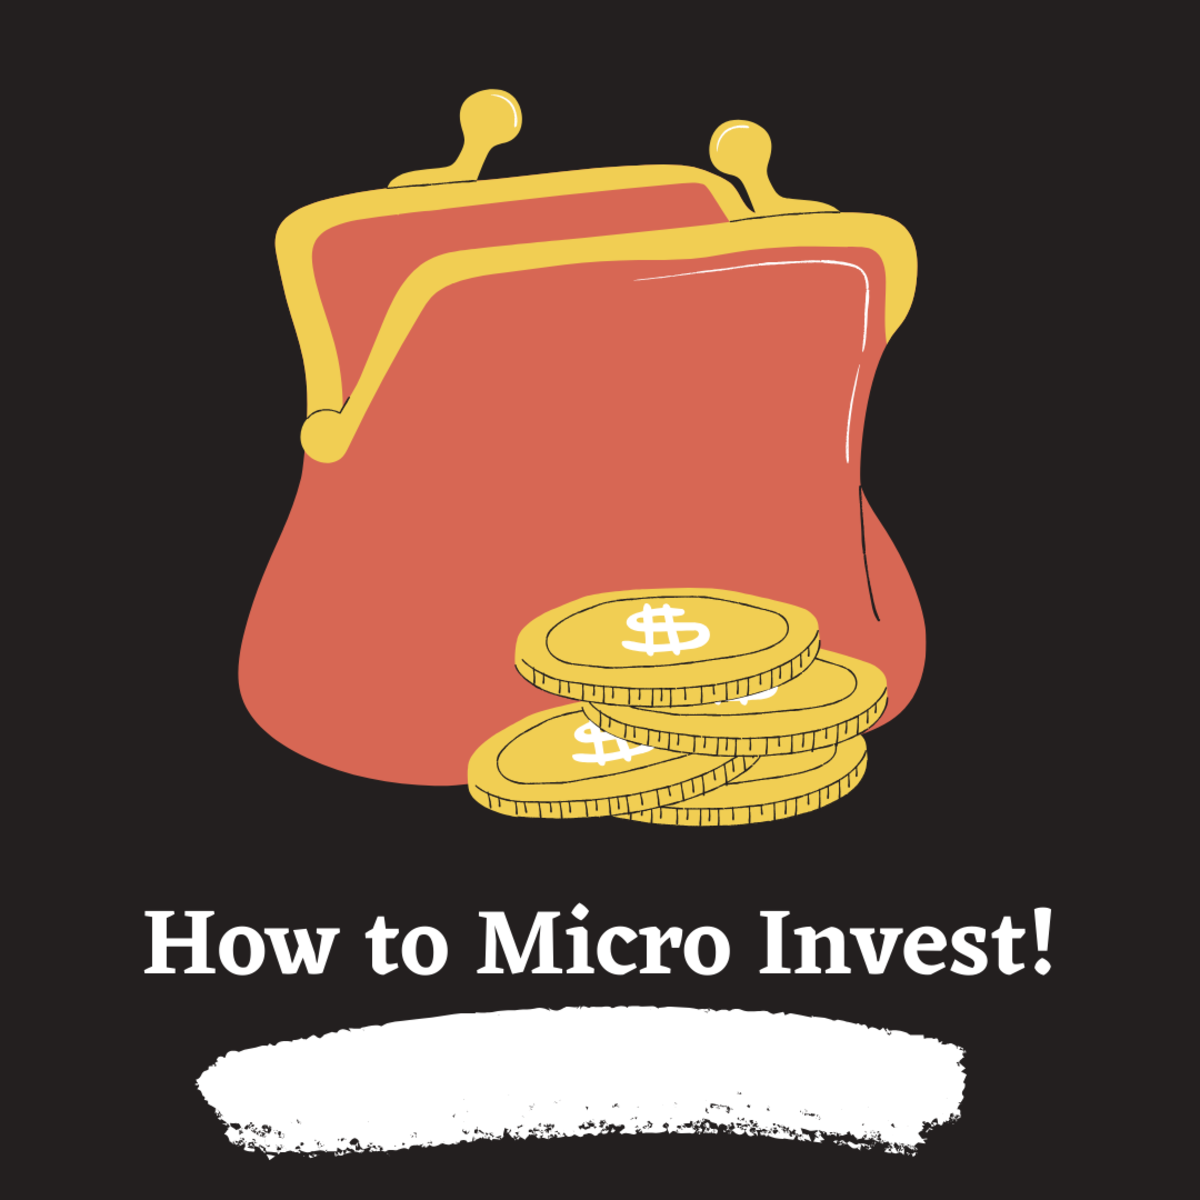 Micro Investing Explained